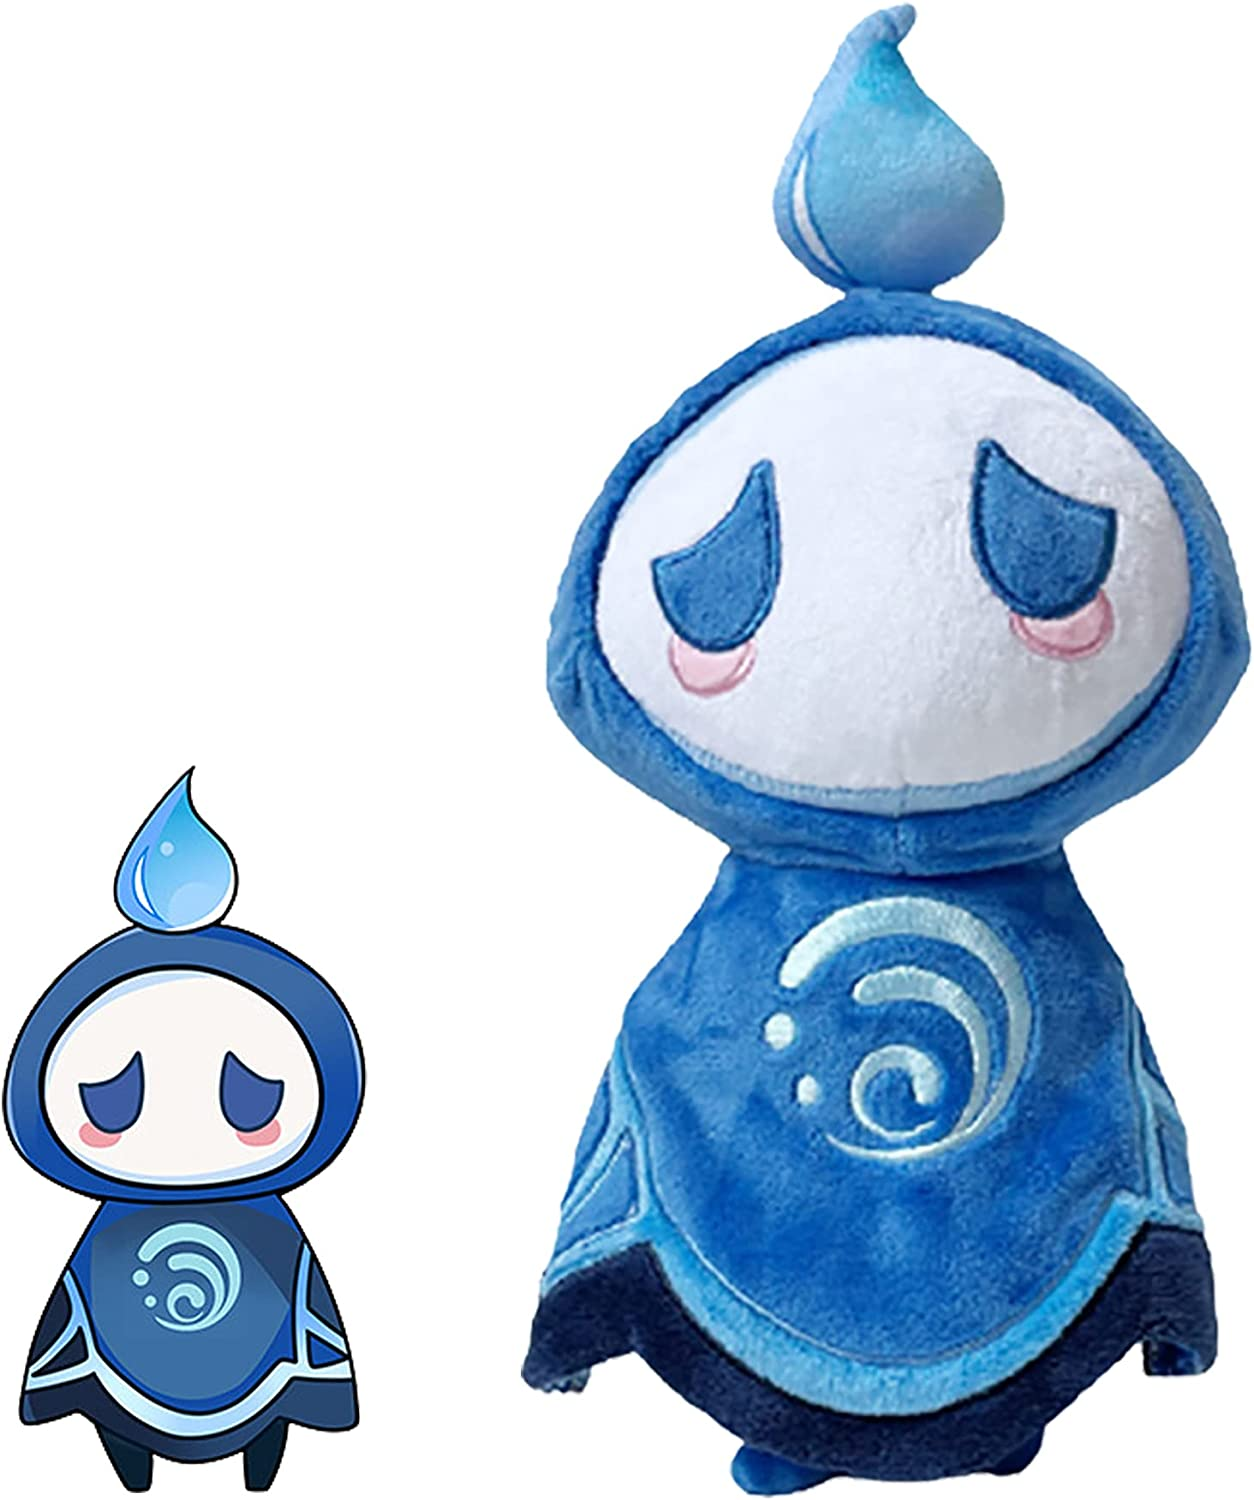 Genshin Impact Plush Toy In a popularity - 30cm Figure Abyss Game quality assurance Mage Fir